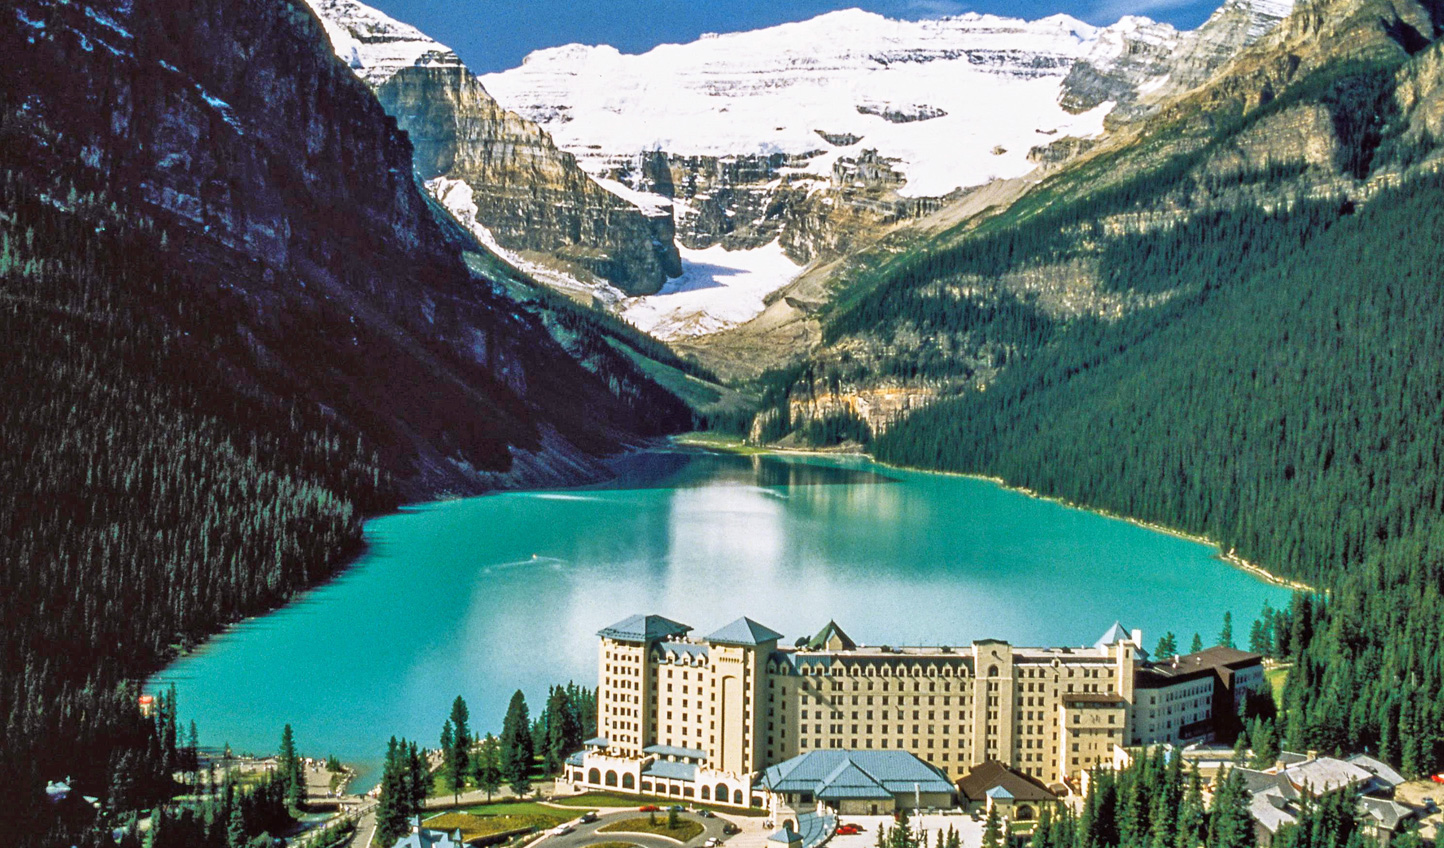 Canada Fairmont Chateau Lake Louise